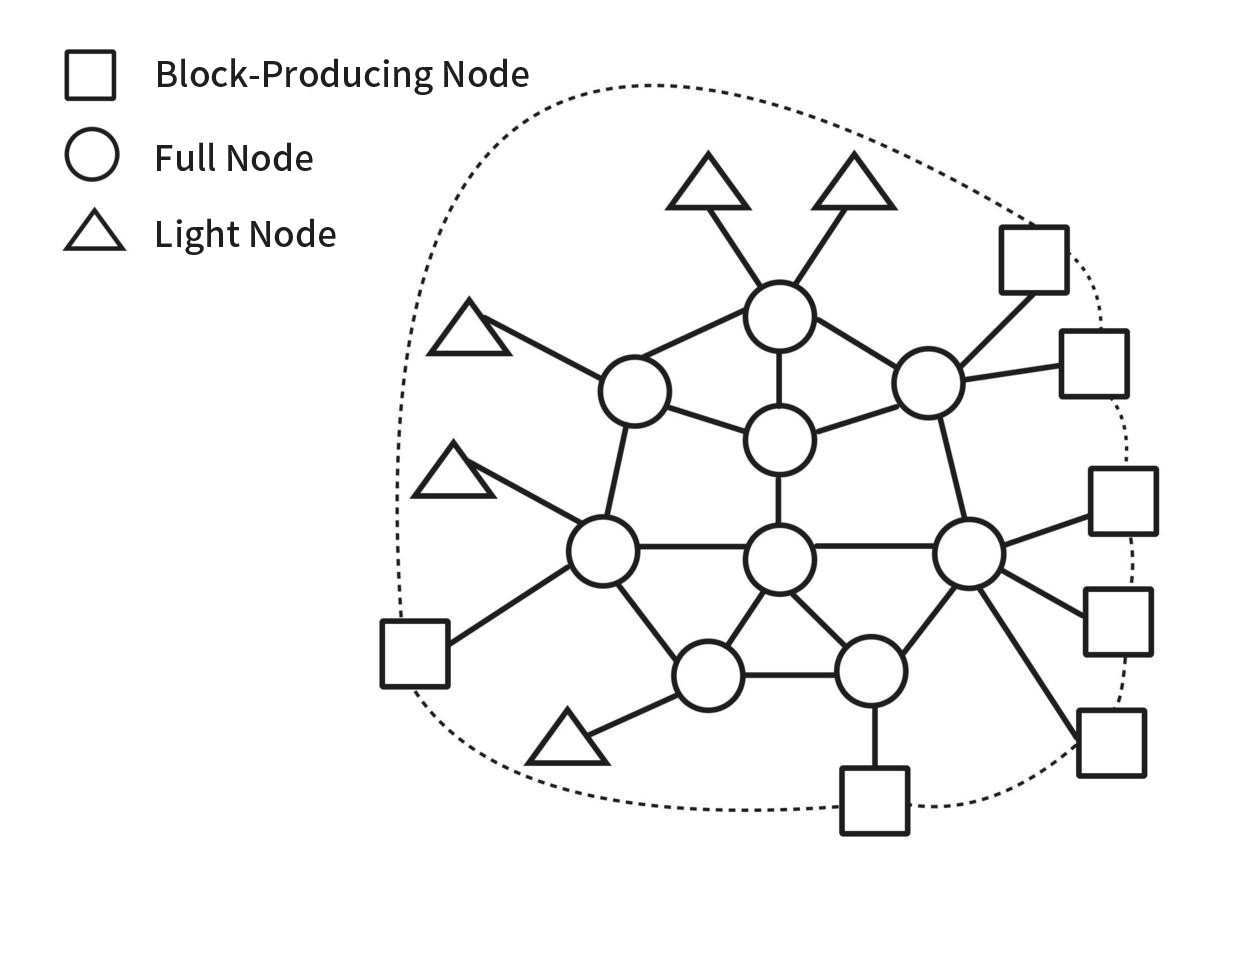 don t trust verify nervos network medium  a private network for block producing nodes dotted line